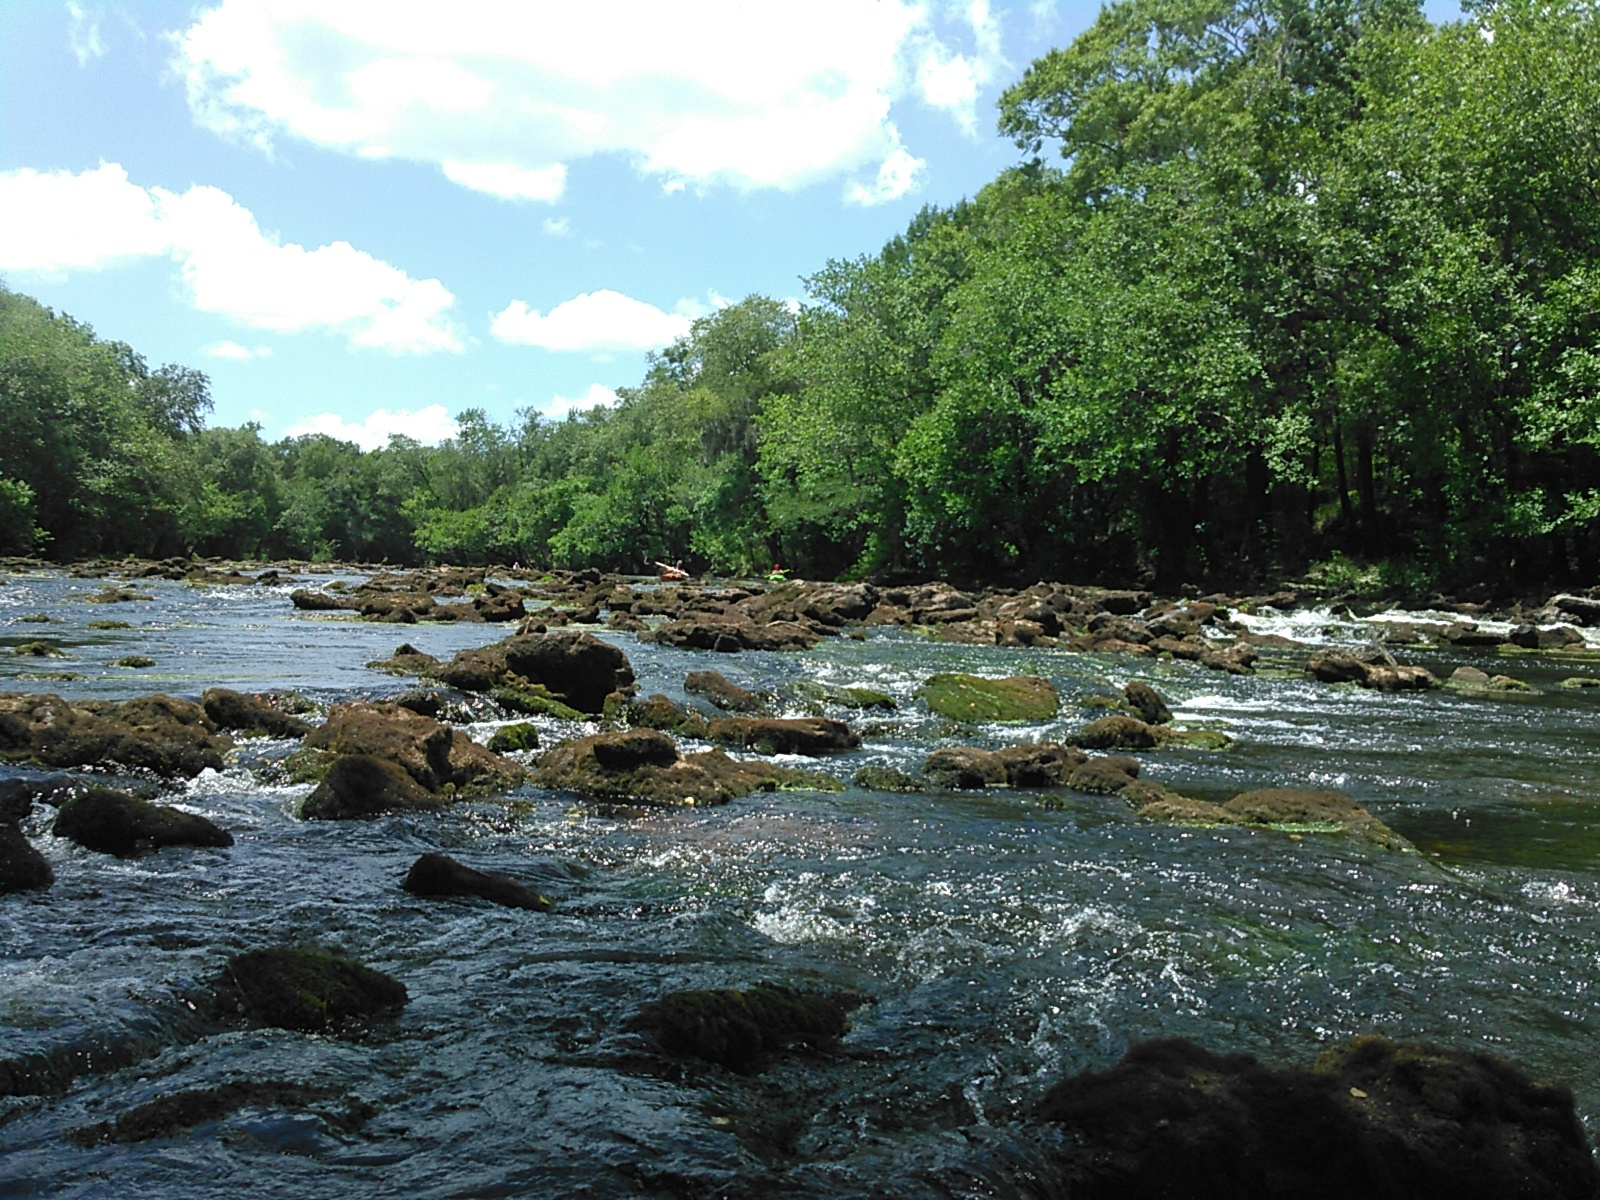 1600x1200 State Line Shoals 30.6345577, -83.3415604, in Nankin to Madison Hwy, Withlacoochee River, by John S. Quarterman, for WWALS.net, 9 July 2016